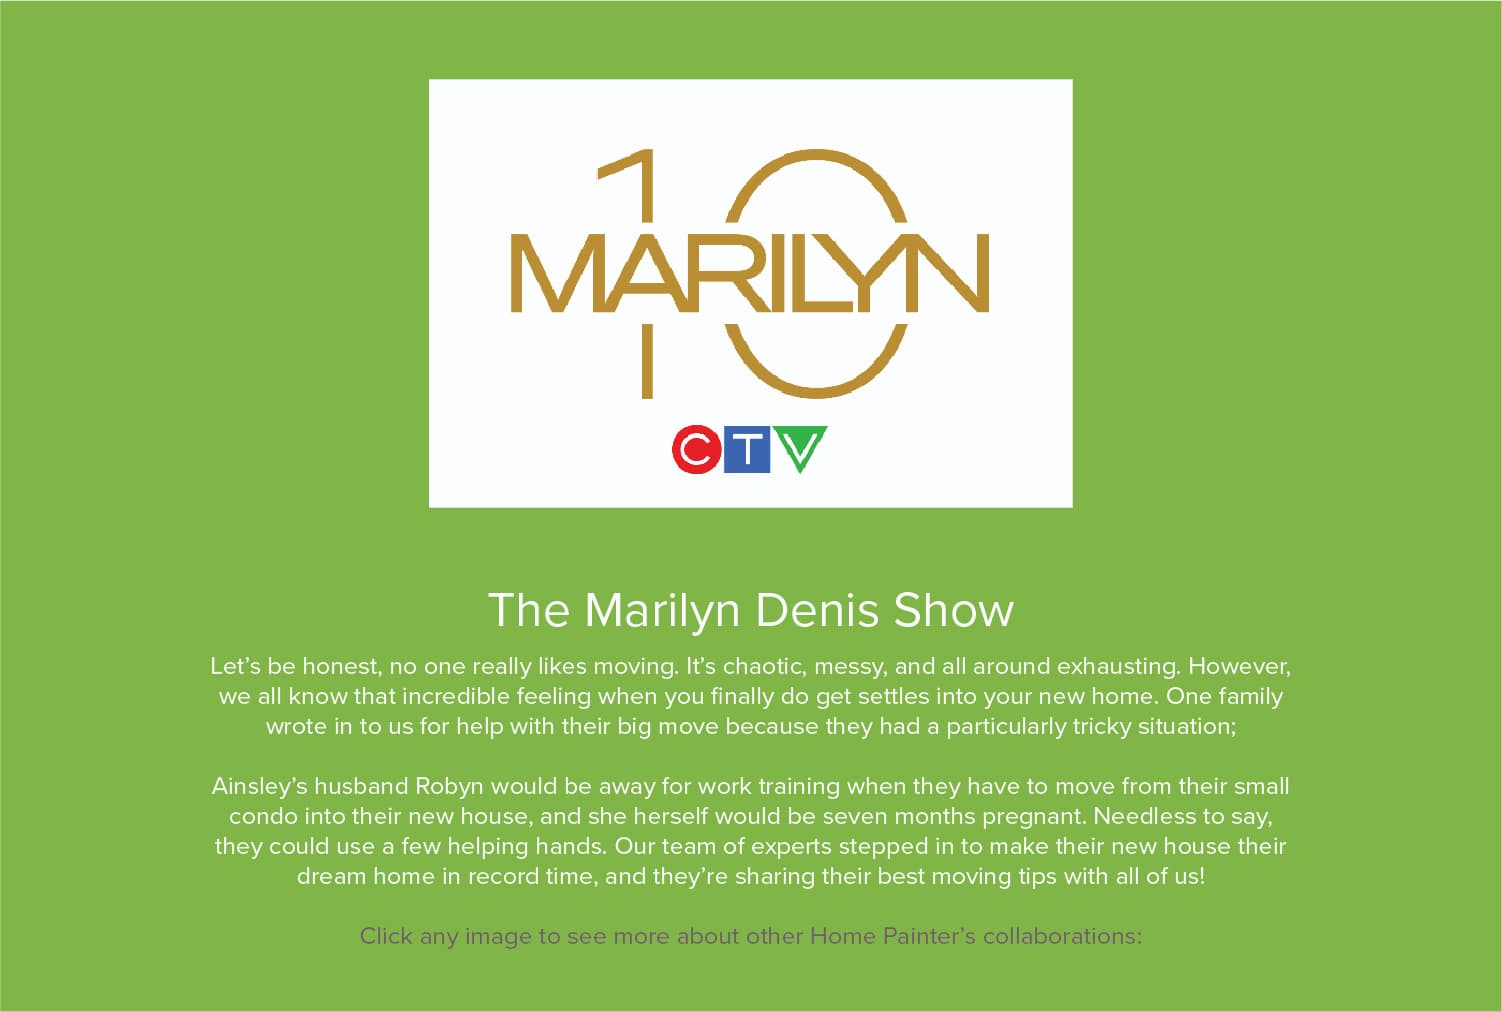 Home painter's collaboration with The Marilyn Denis Show